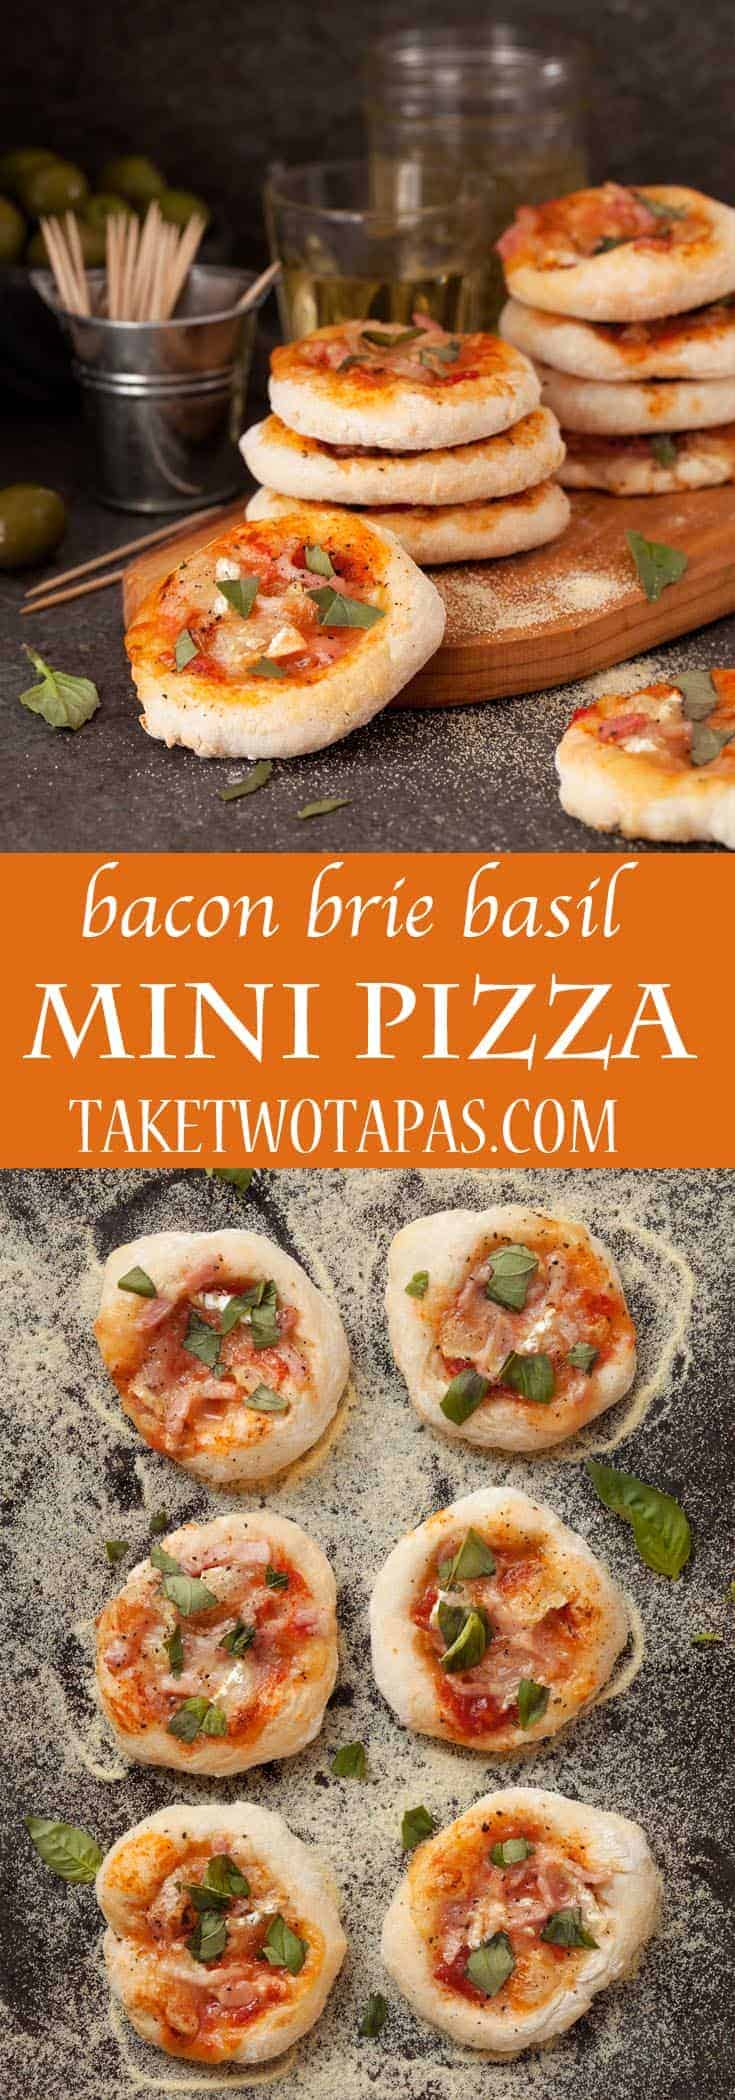 Bacon Brie Basil Mini Pizzas are a delicious full flavor snack perfect for Game Day!  #gameday #appetizer #pizza #fingerfood